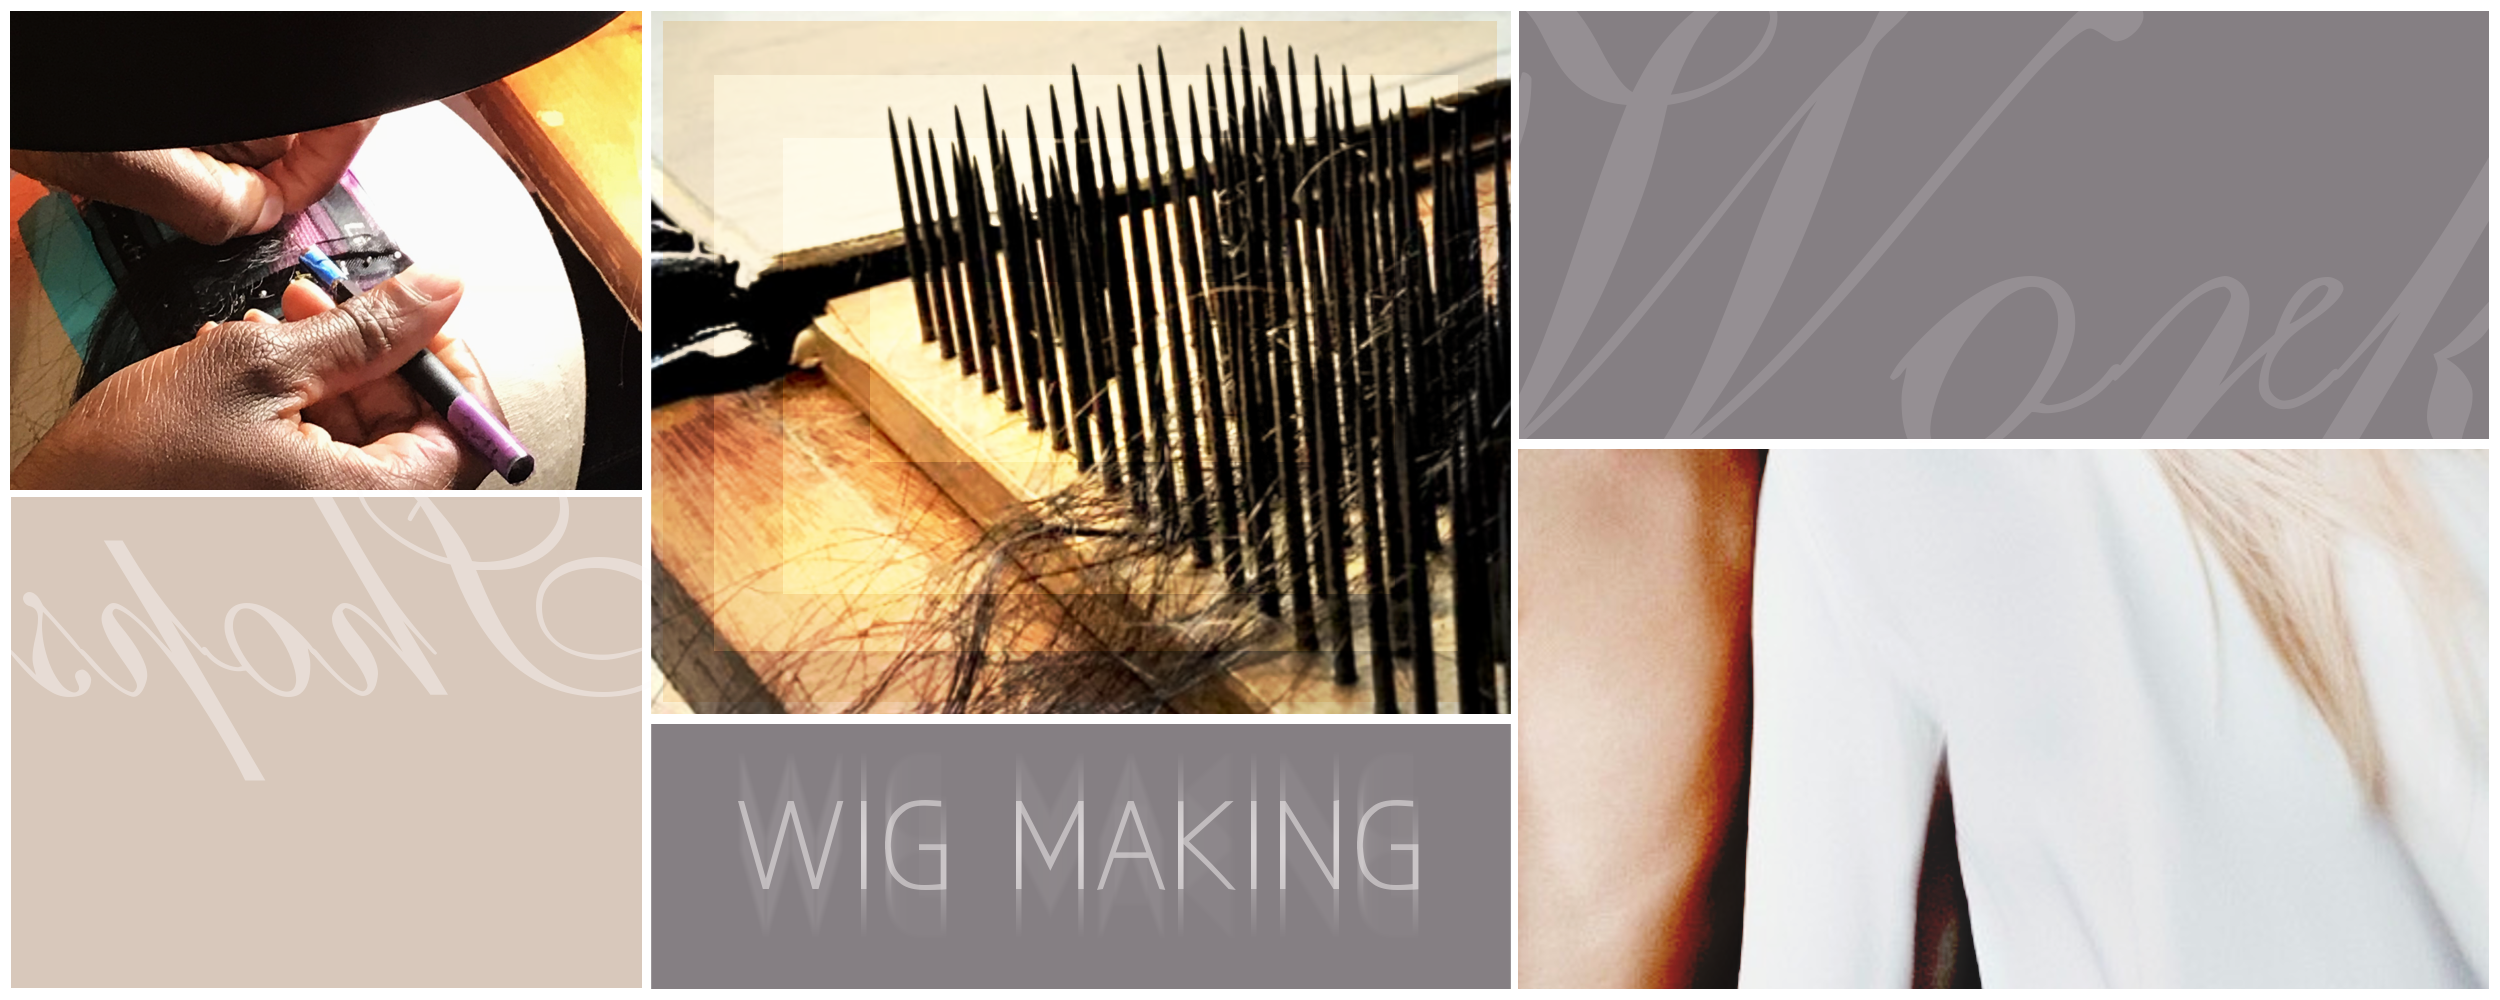 Learn to make wigs at our NYC private workshop!